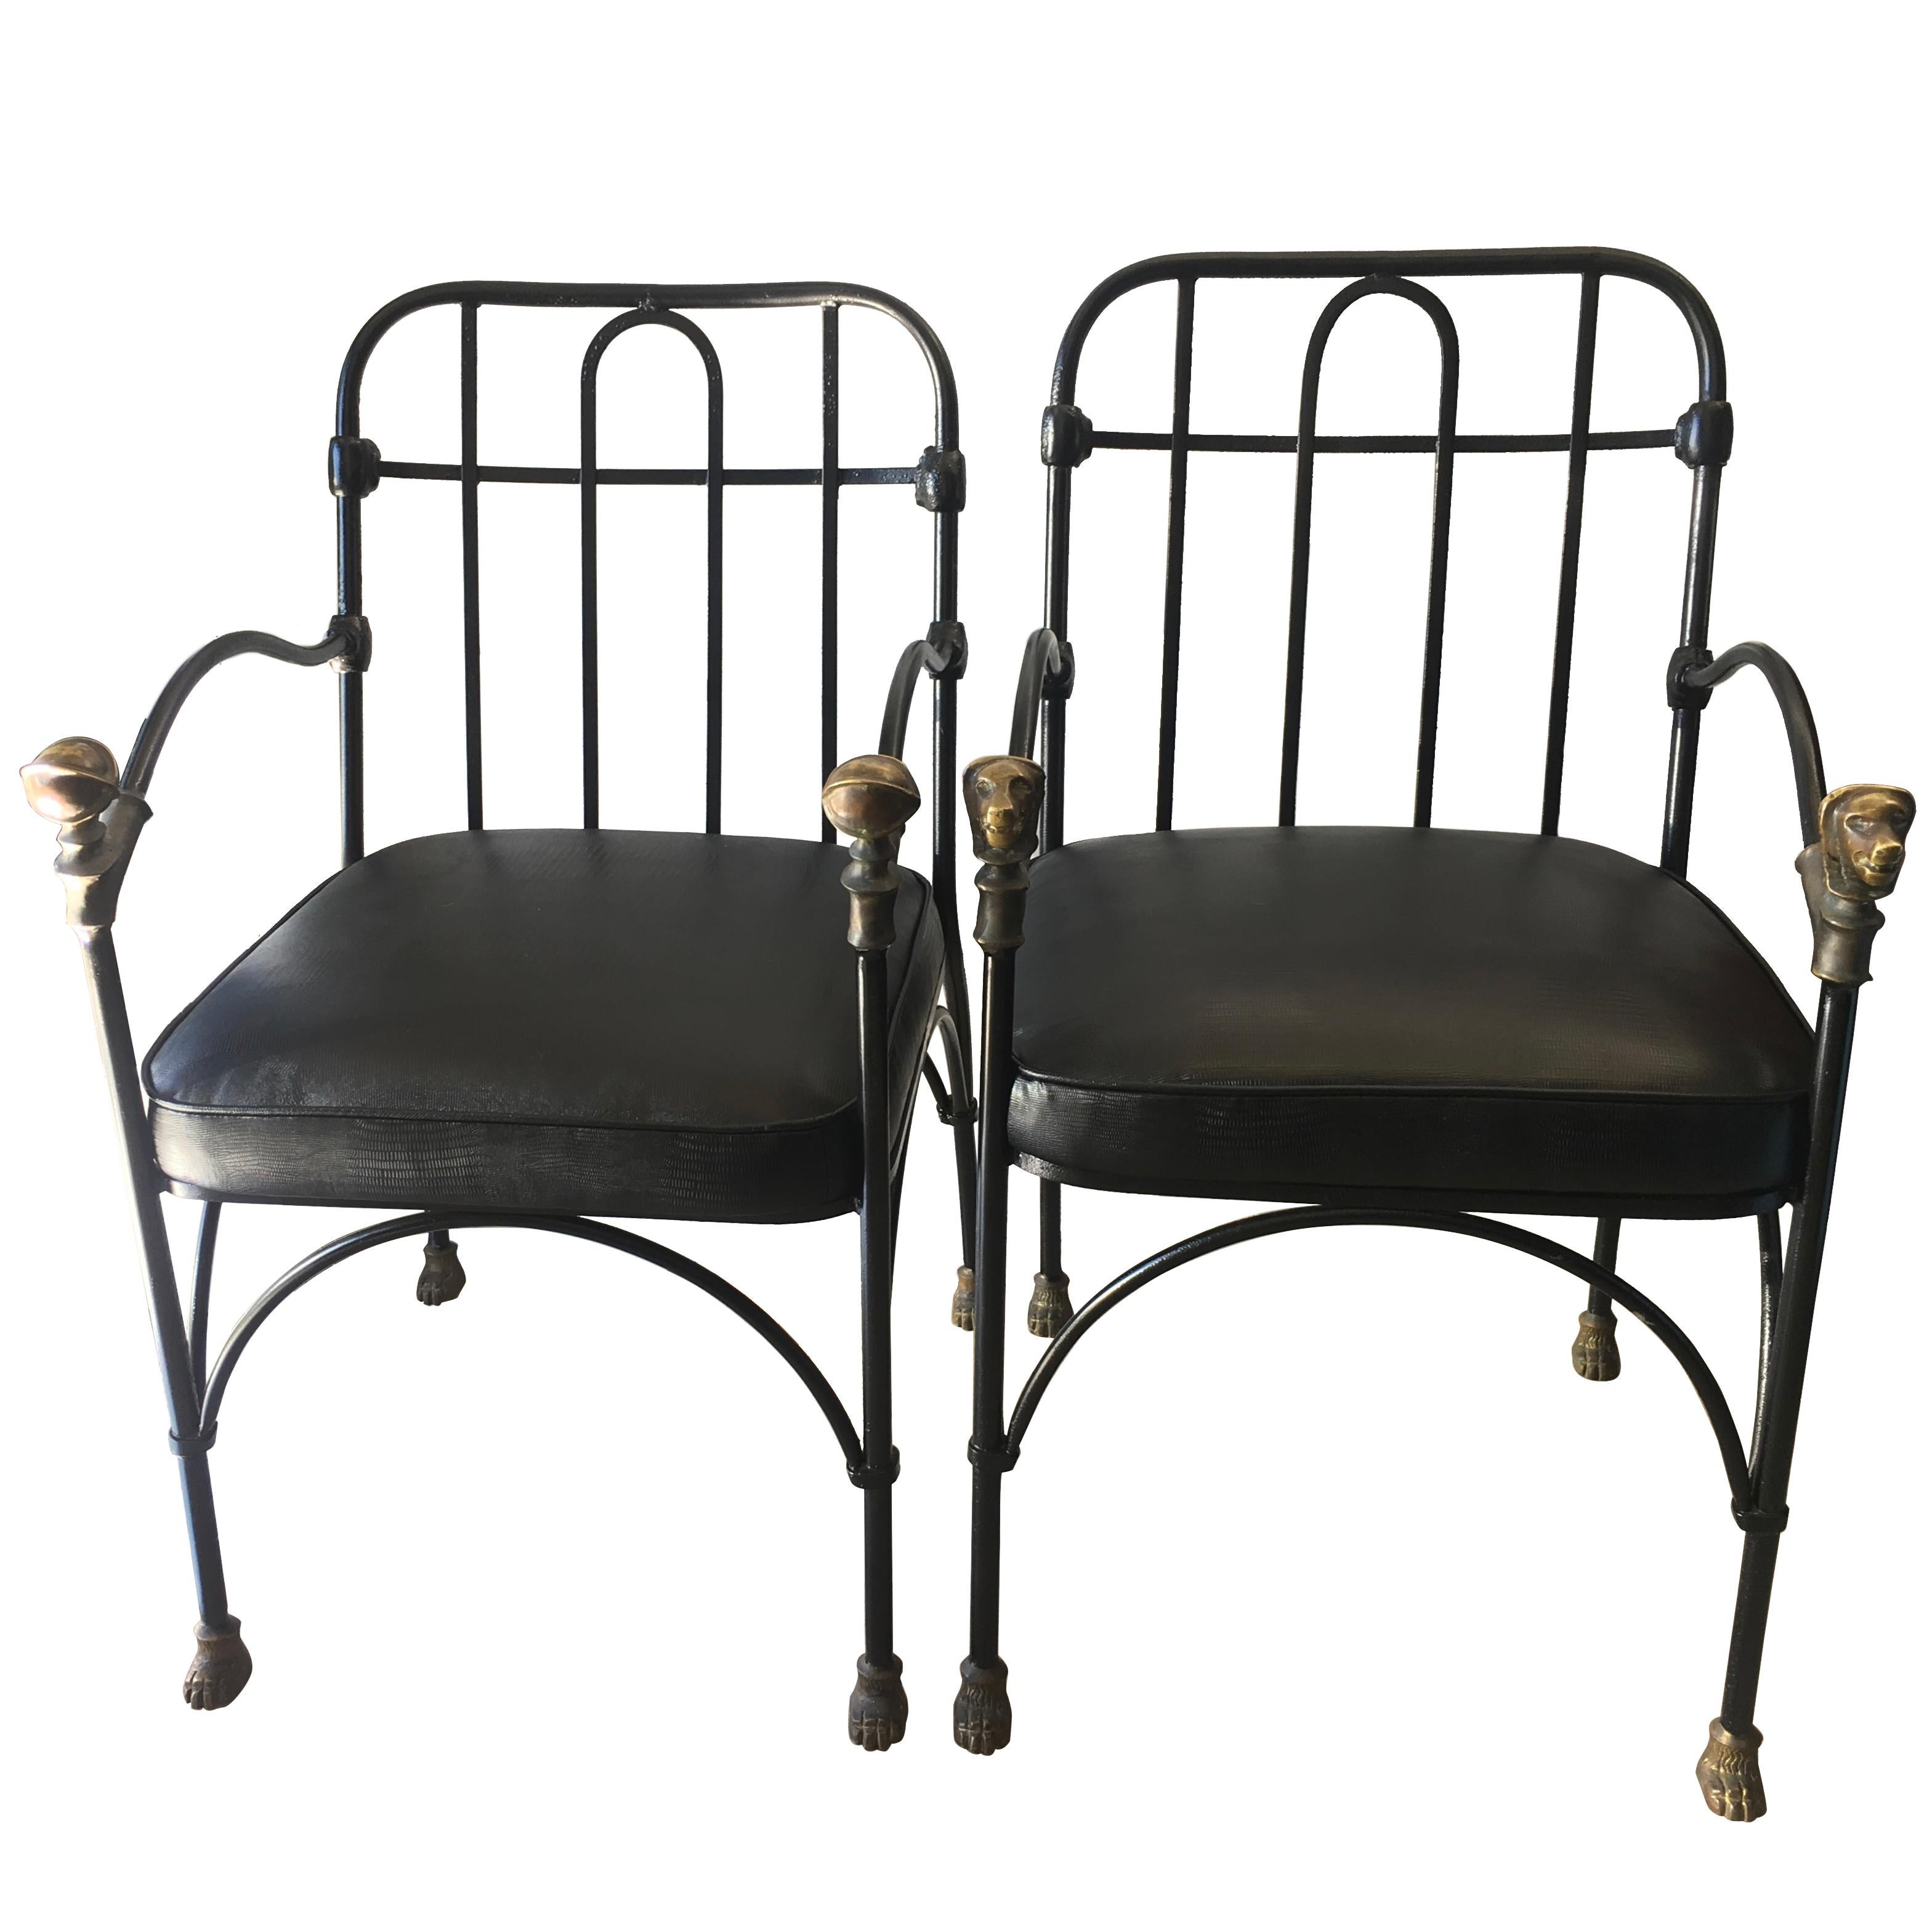 Pair of wrought iron and bronze chairs after giacometti for sale at 1stdibs